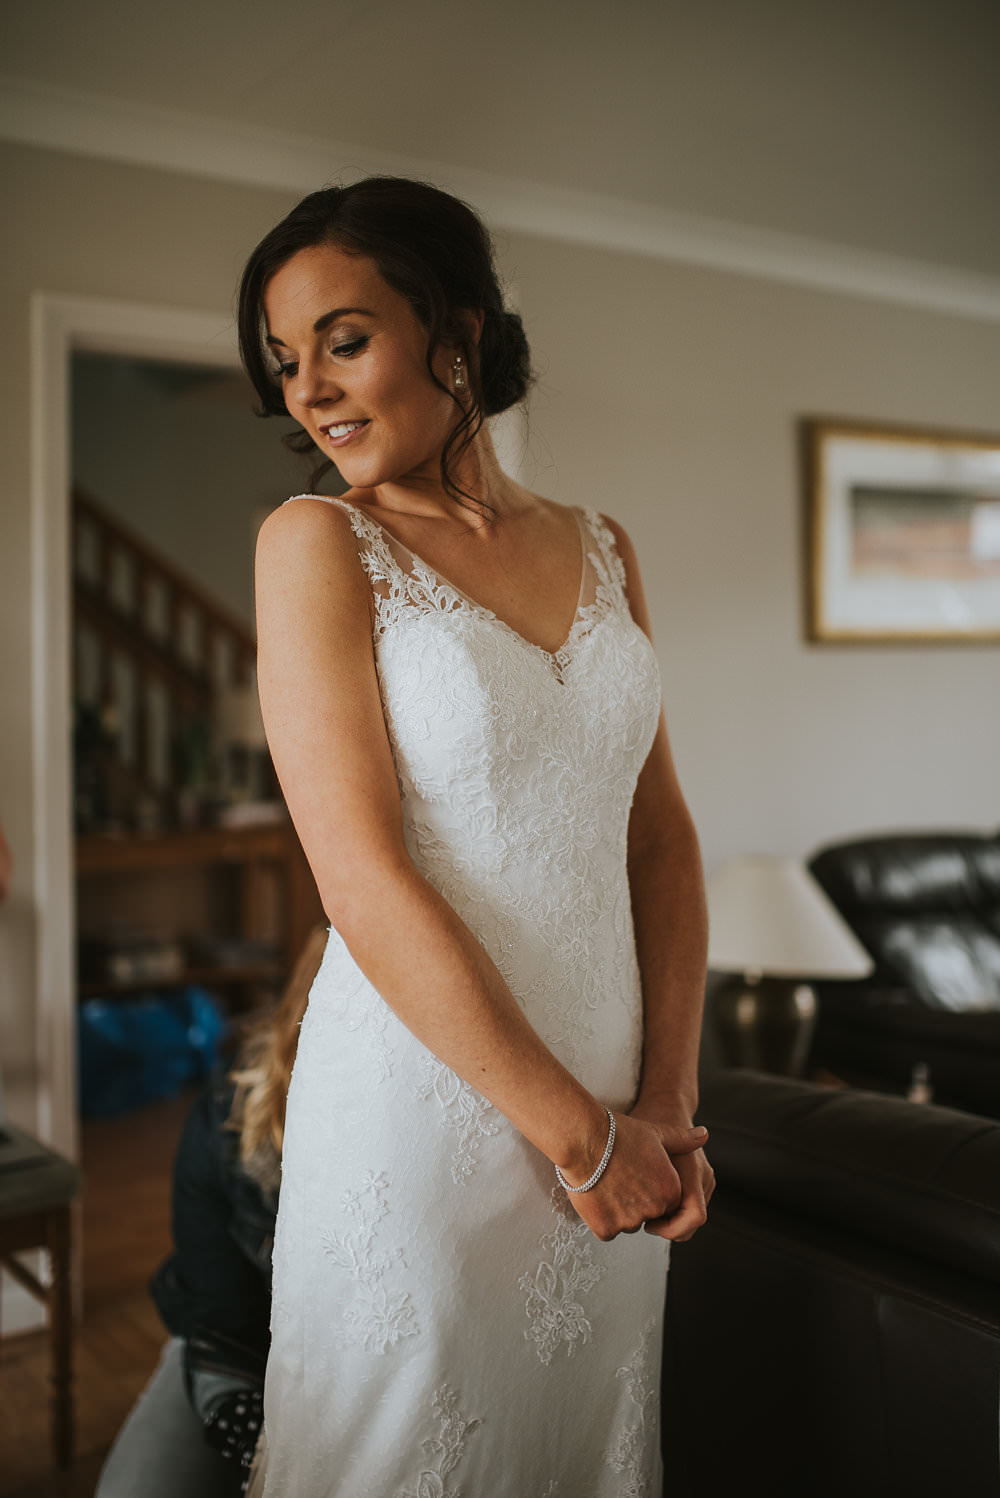 Bride Bridal Lace Sweetheart Neckline Straps Sleeveless Macdonald Houston Hotel Wedding Martin Venherm Photography